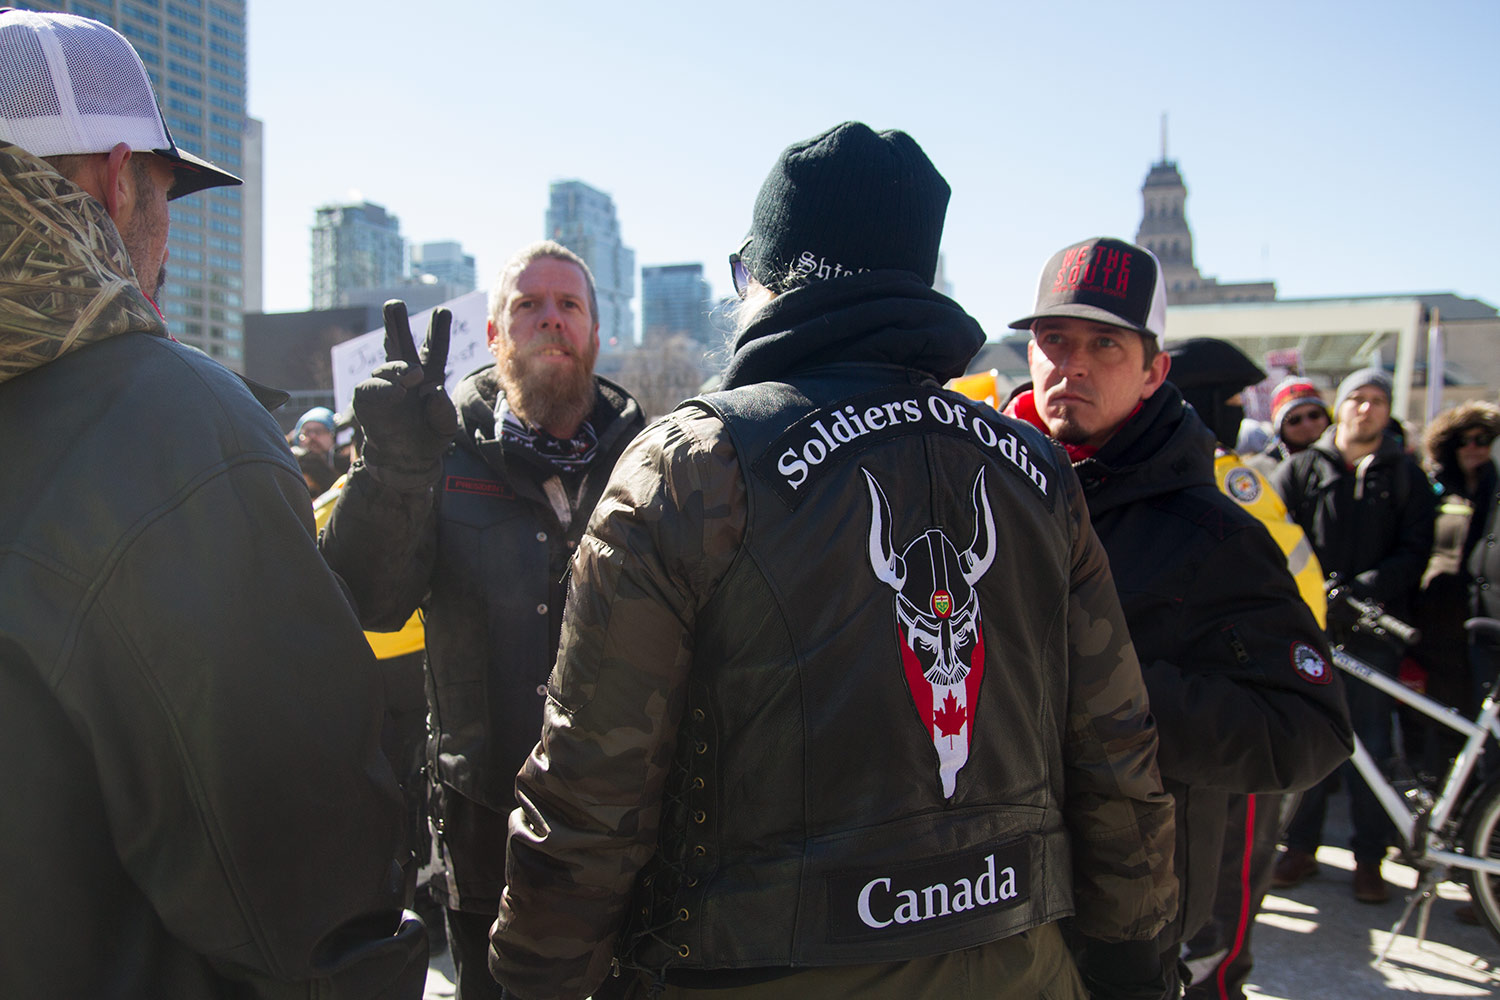 how to join antifa canada